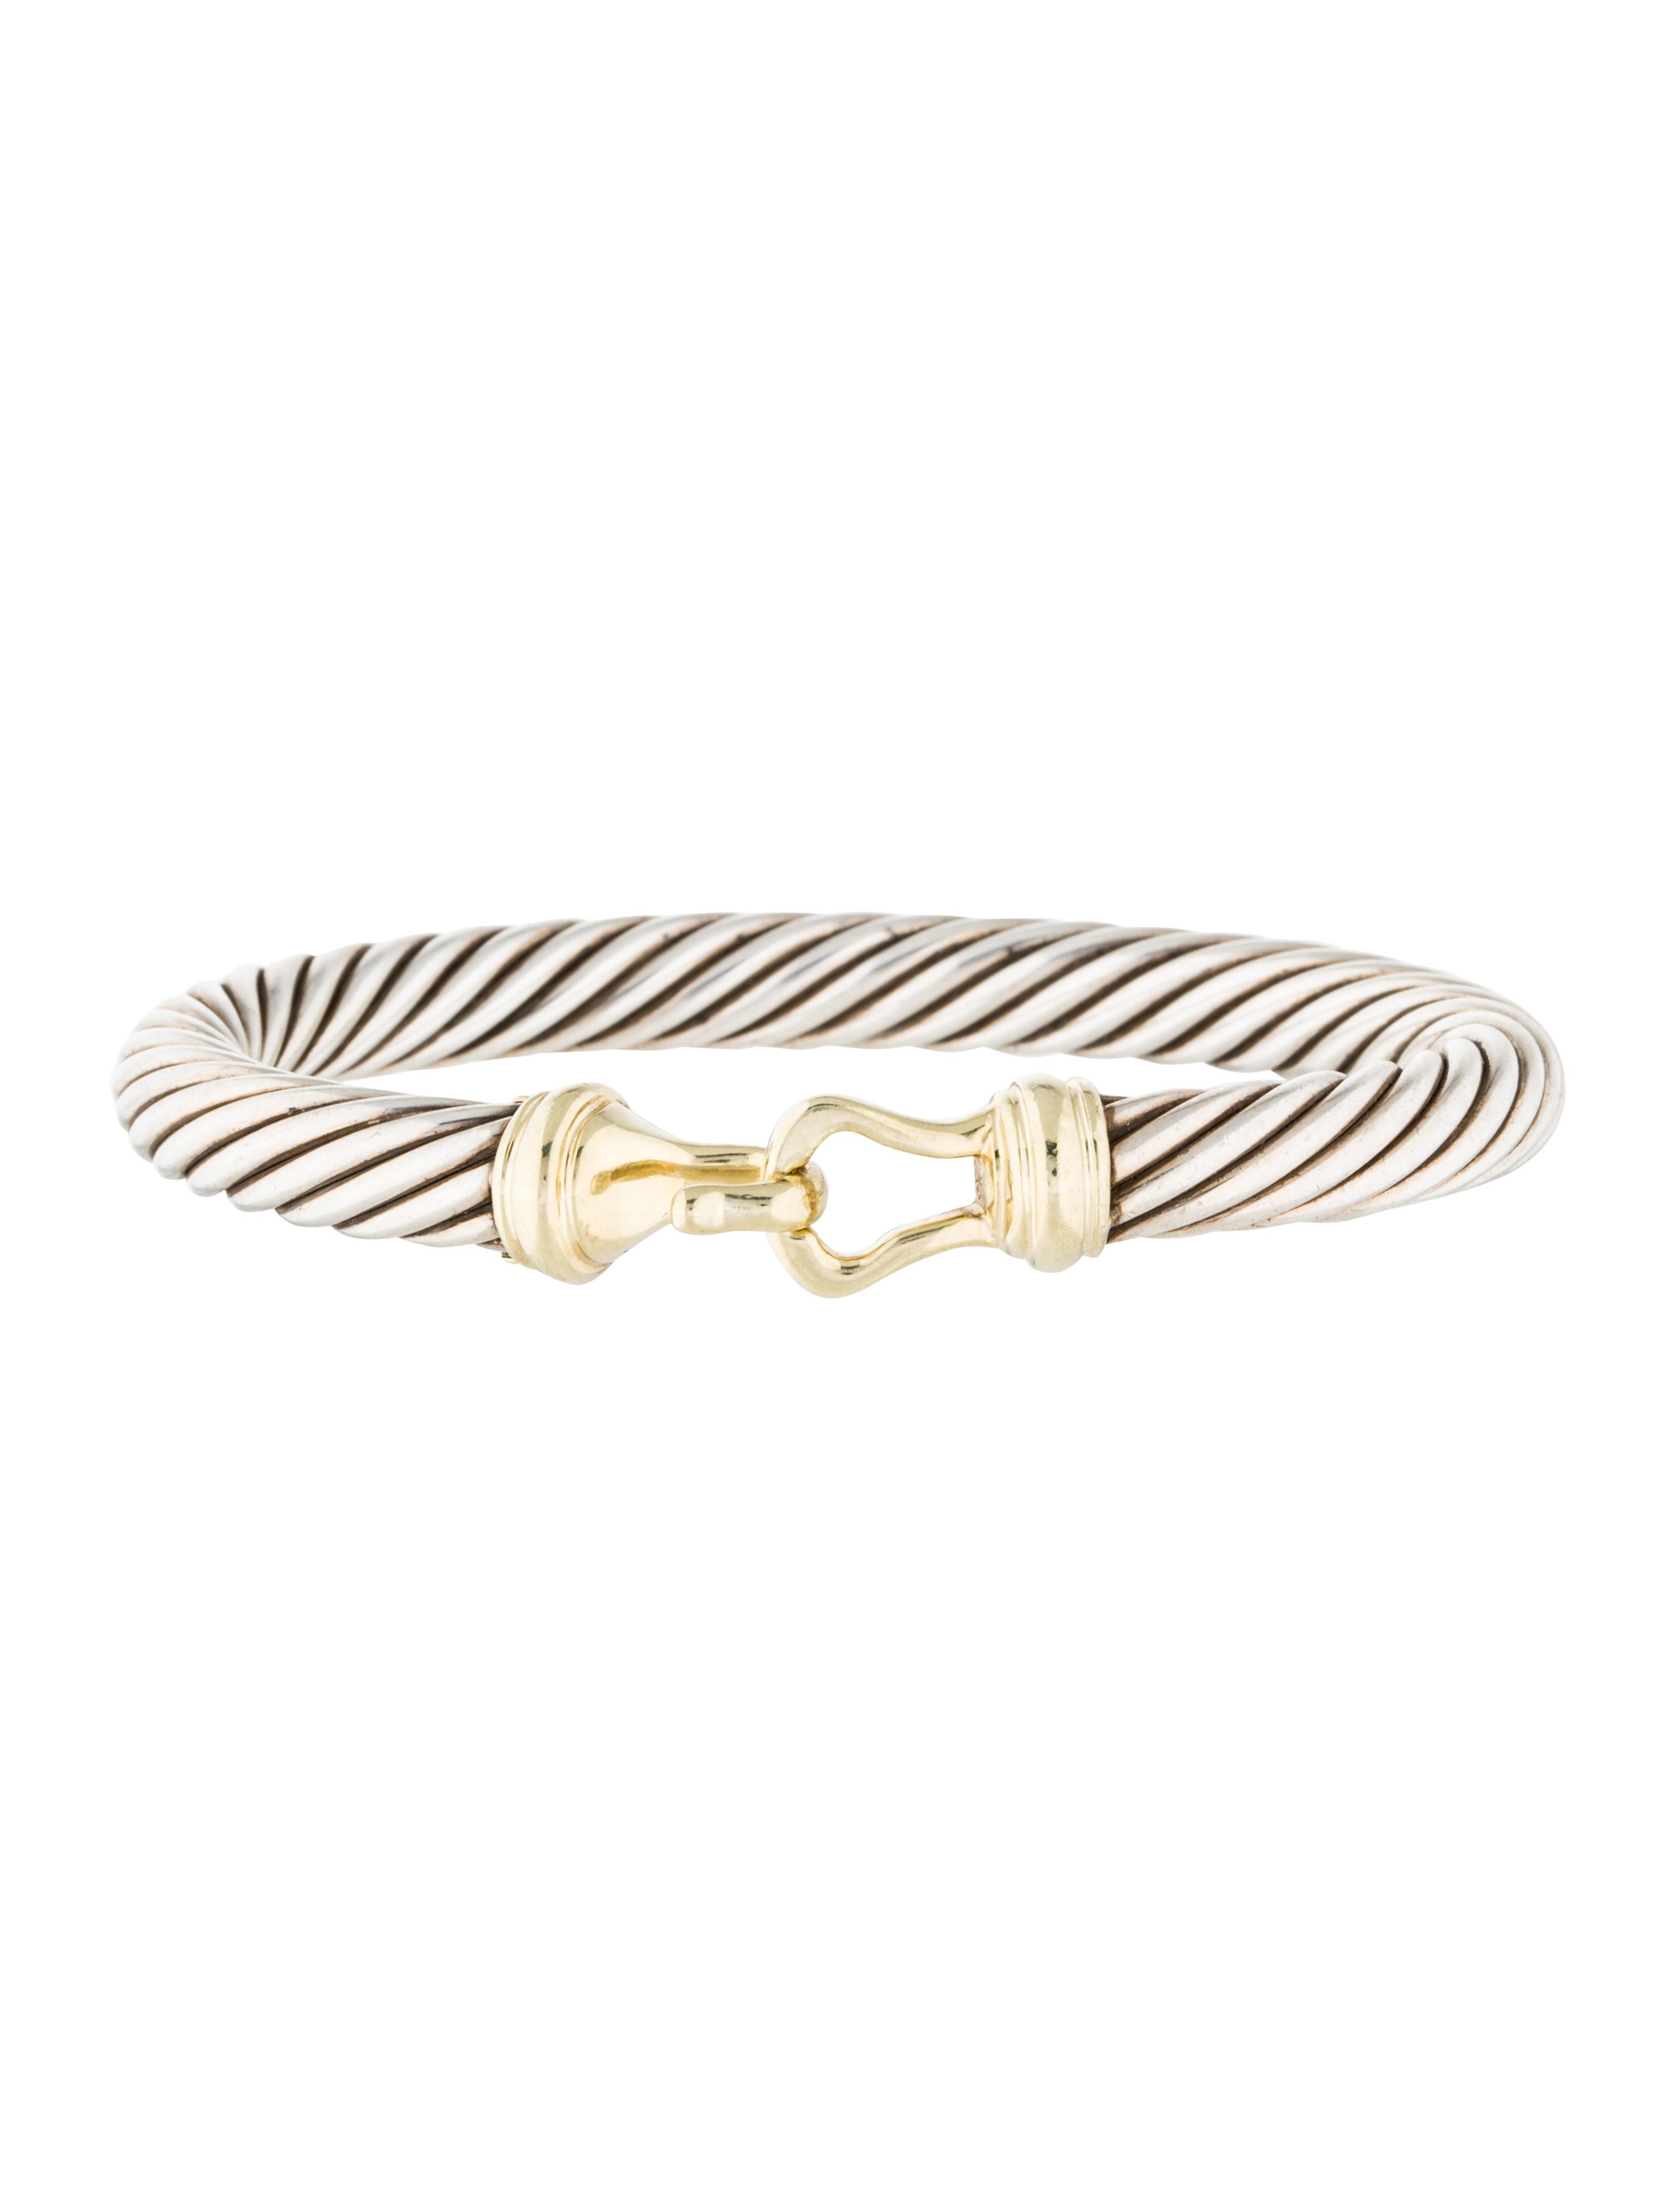 David yurman cable buckle bracelet bracelets dvy37781 for David yurman inspired bracelet cable